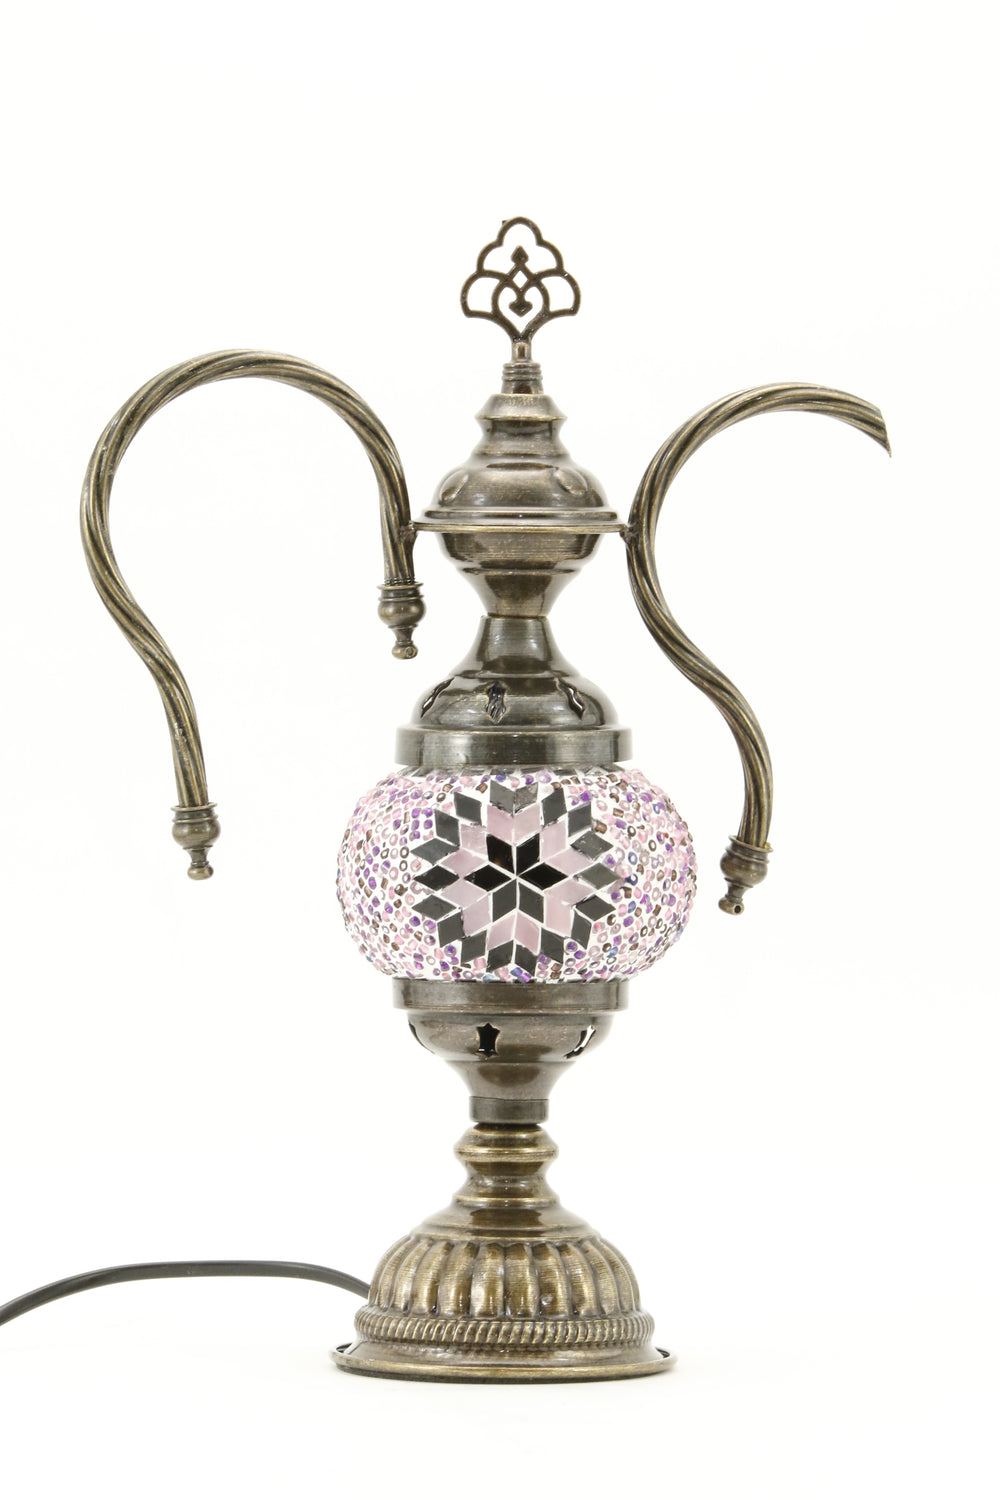 TURKISH MOSAIC GENIE BOTTLE TABLE LAMP MAUVISH PINK -TURNED OFF